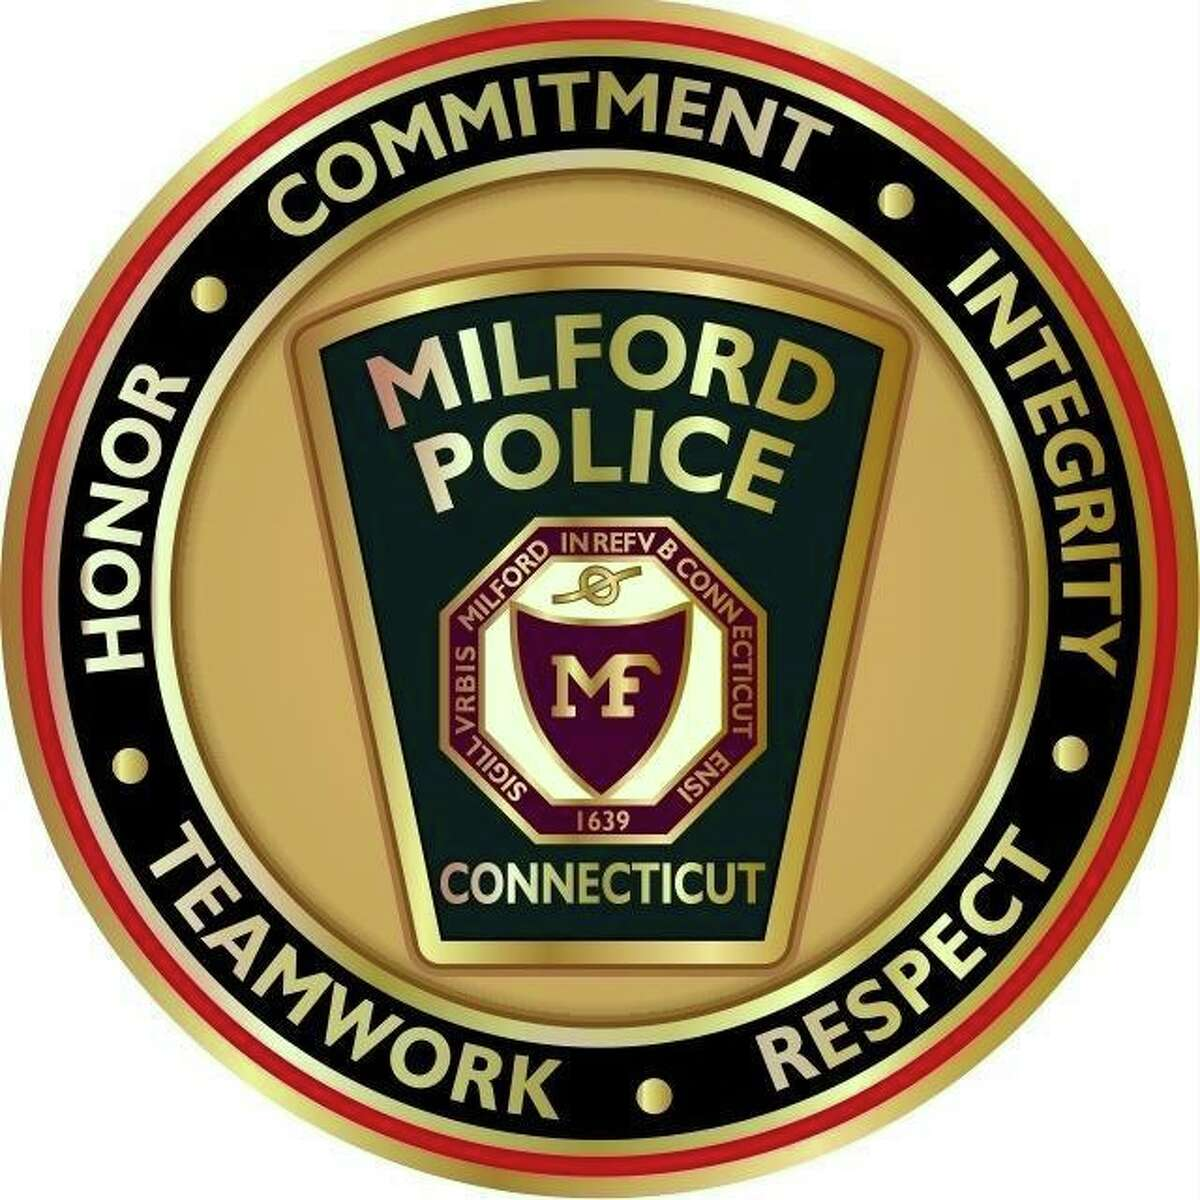 The Milford Police Department and Connecticut Department of Transportation's Highway Safety Office, along with state and other local law enforcement, have announced that the